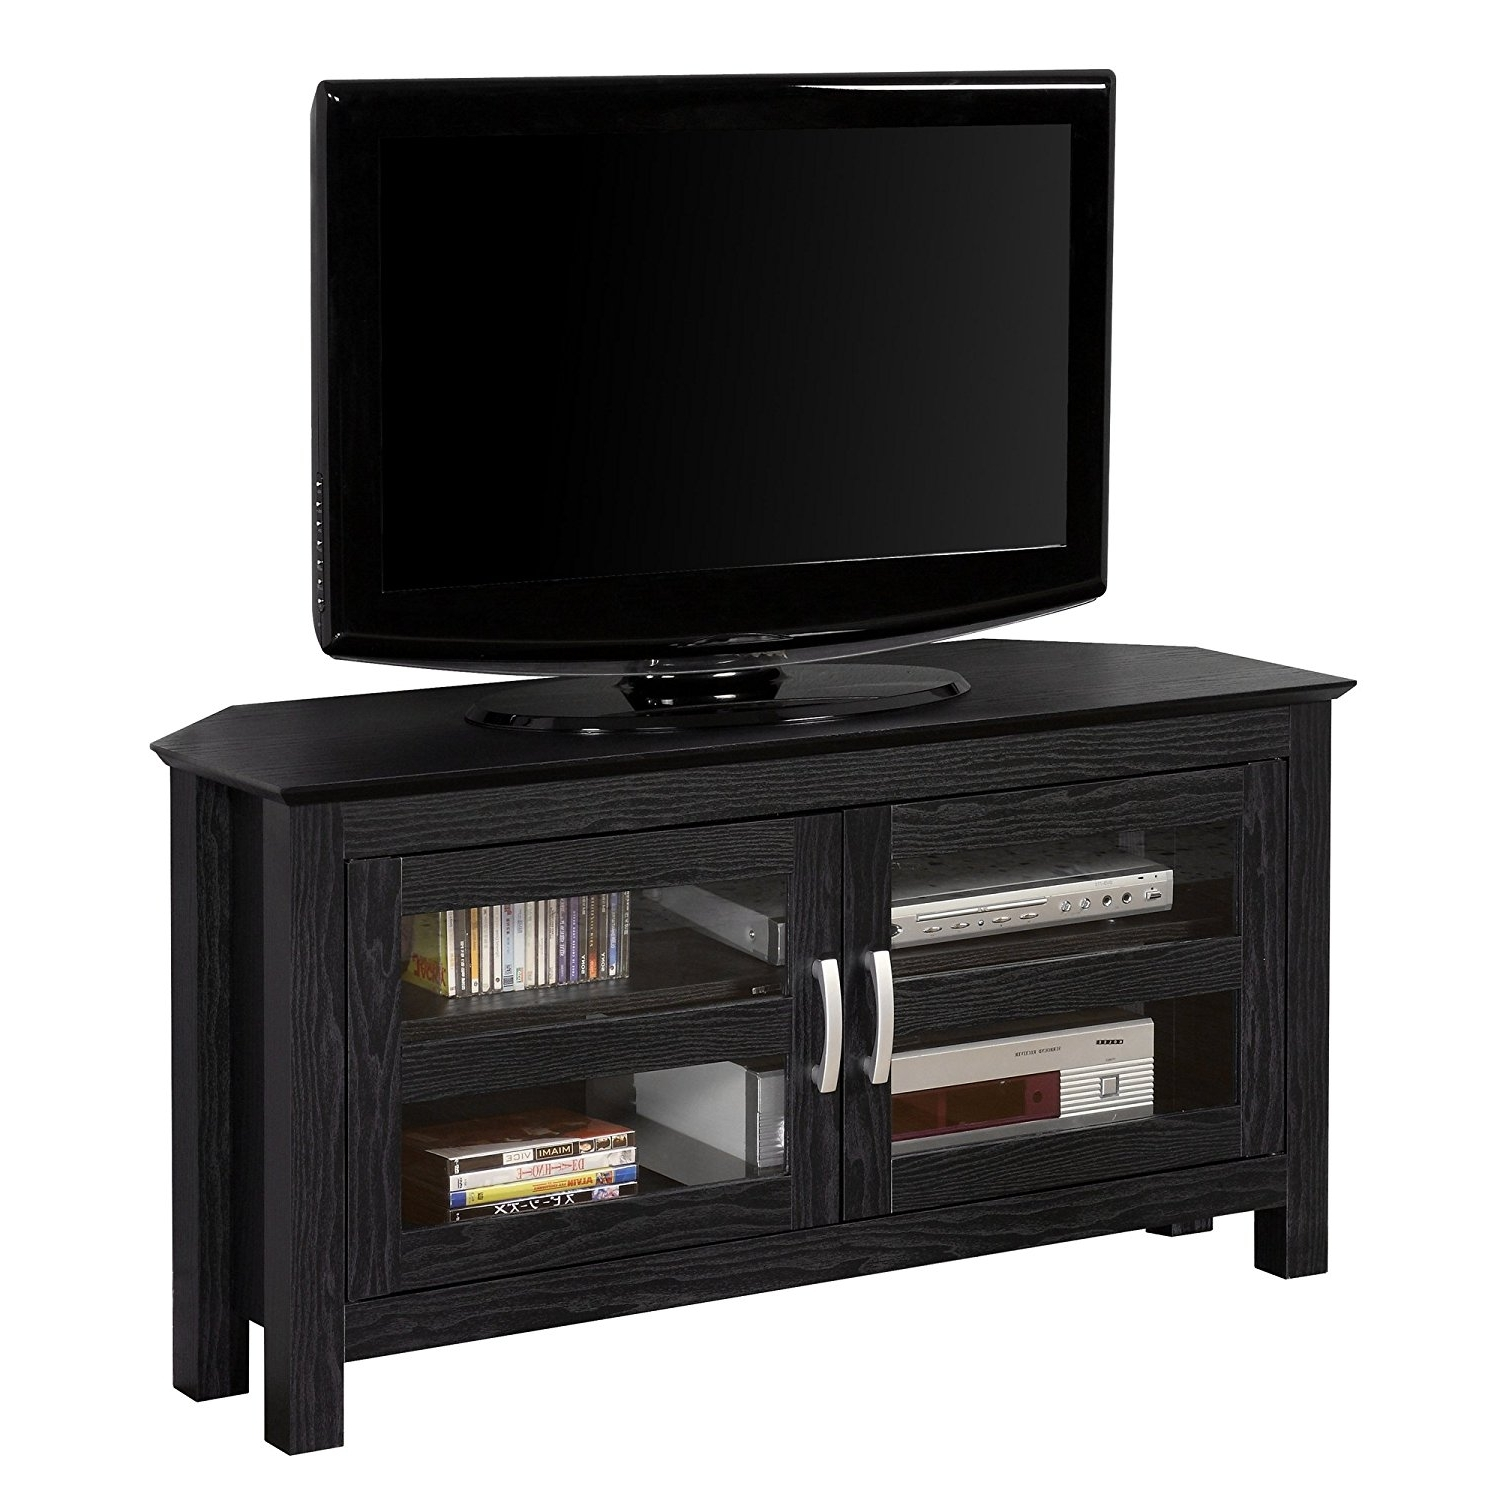 Most Popular Console Tables : Corner Tv Stand Console Table Painted Gola Regarding Tv Corner Shelf Unit (View 3 of 15)